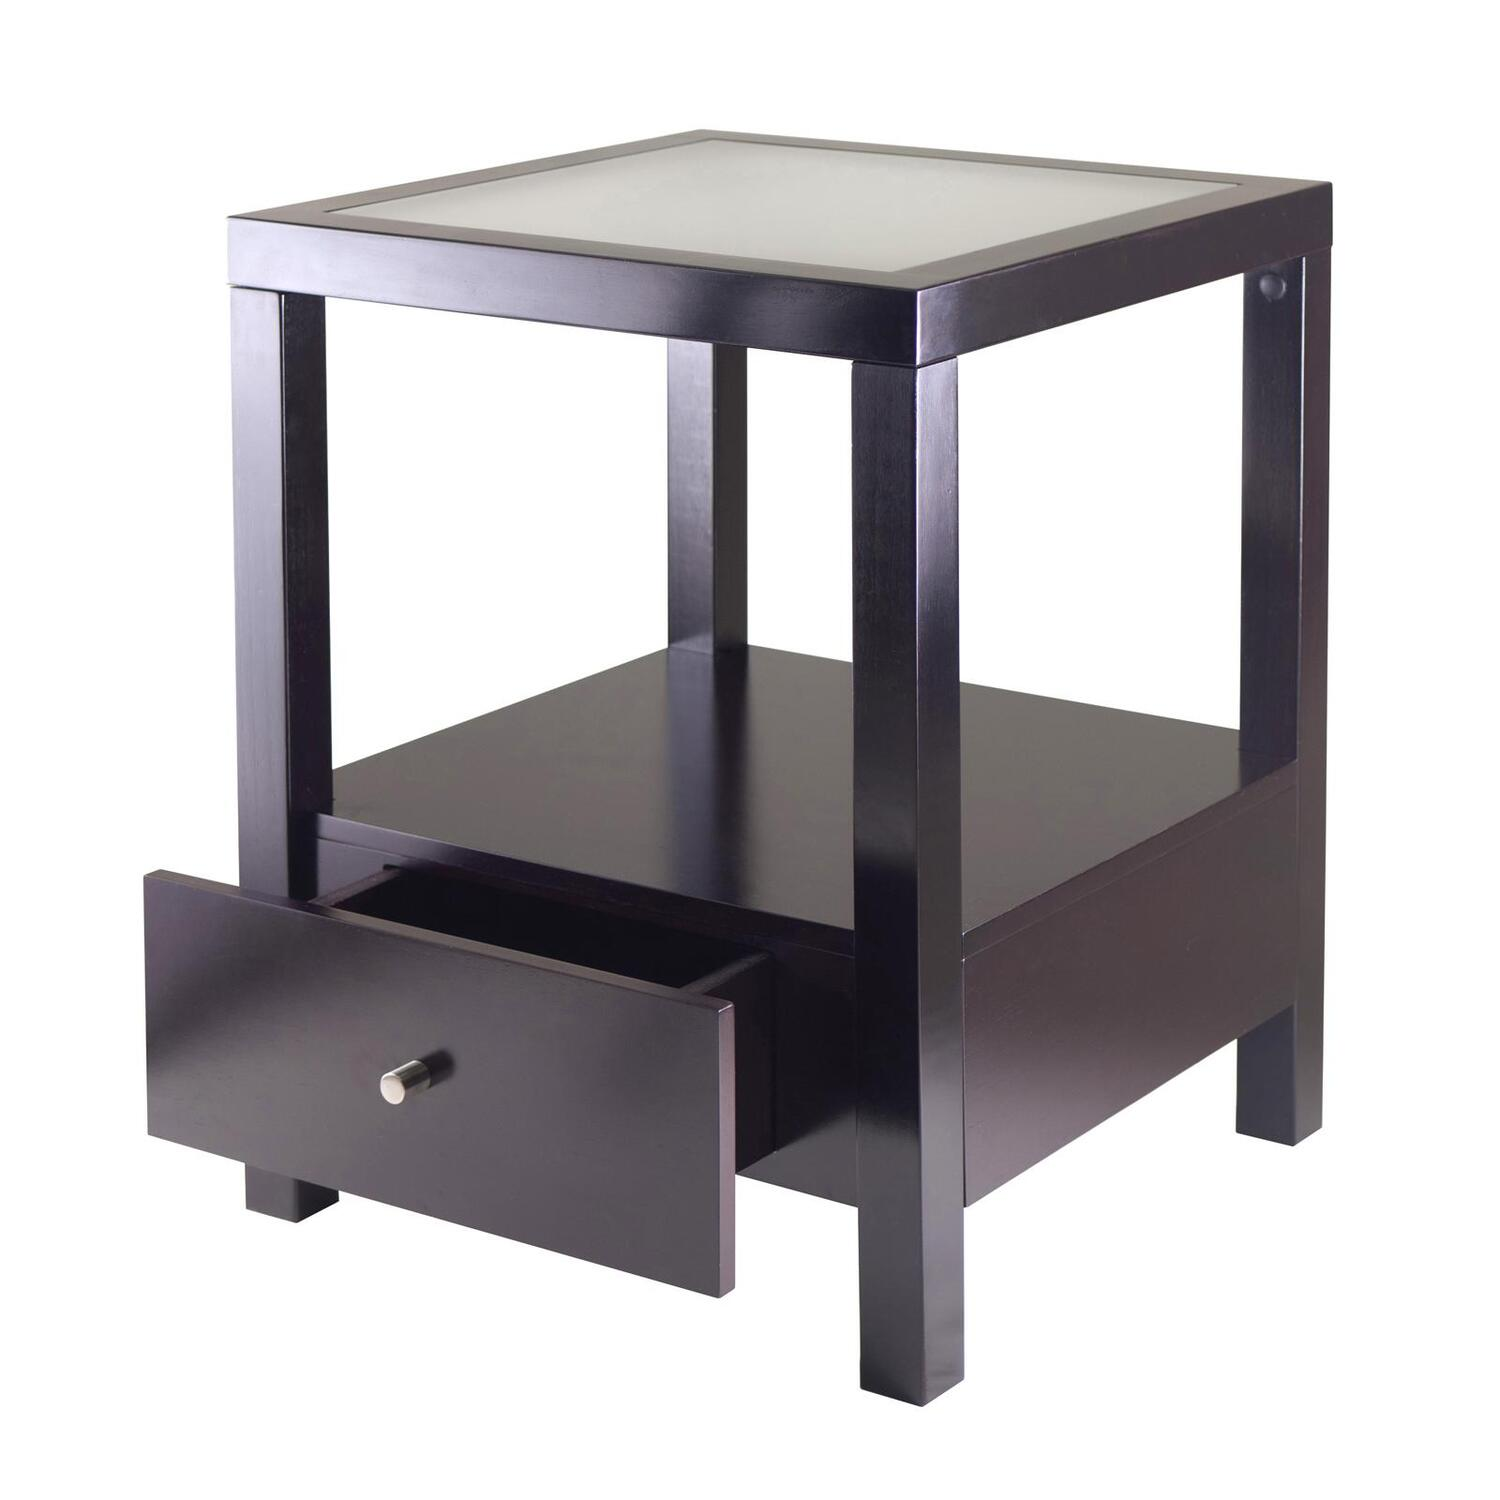 winsome copenhagen end table with glass top by oj commerce   - copenhagen end table with glass top